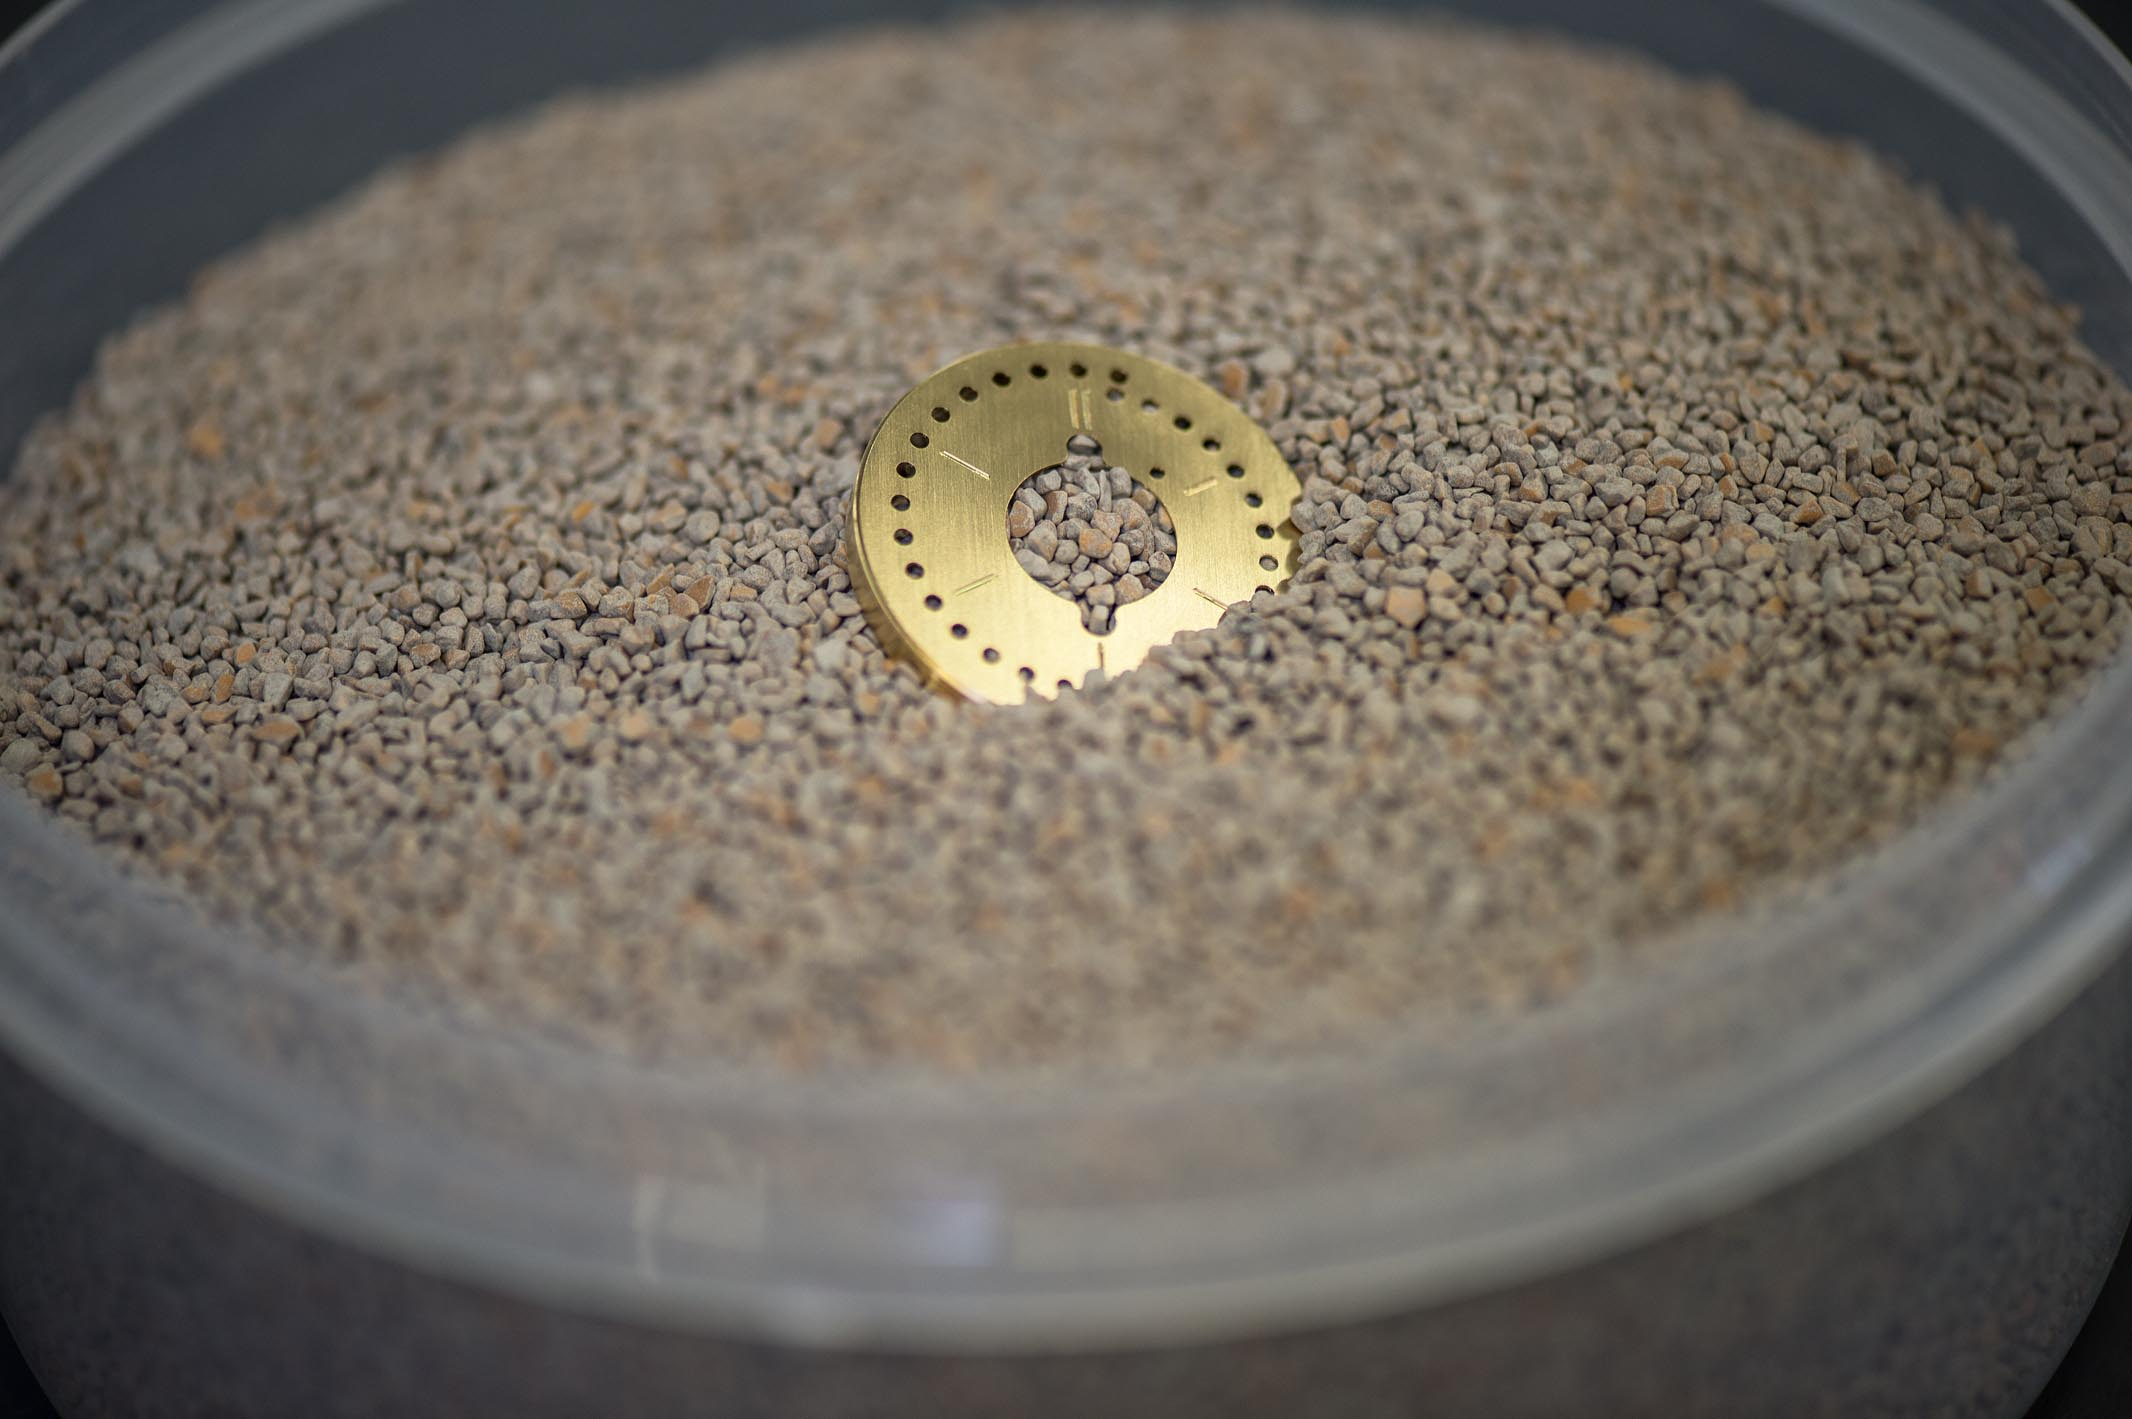 At the end, the dial undergoes several hours of vibratory finishing in a granulate made of nut shells. This breaks/polishes off any remaining artifacts from the production process, but preserves the milled surface structure.